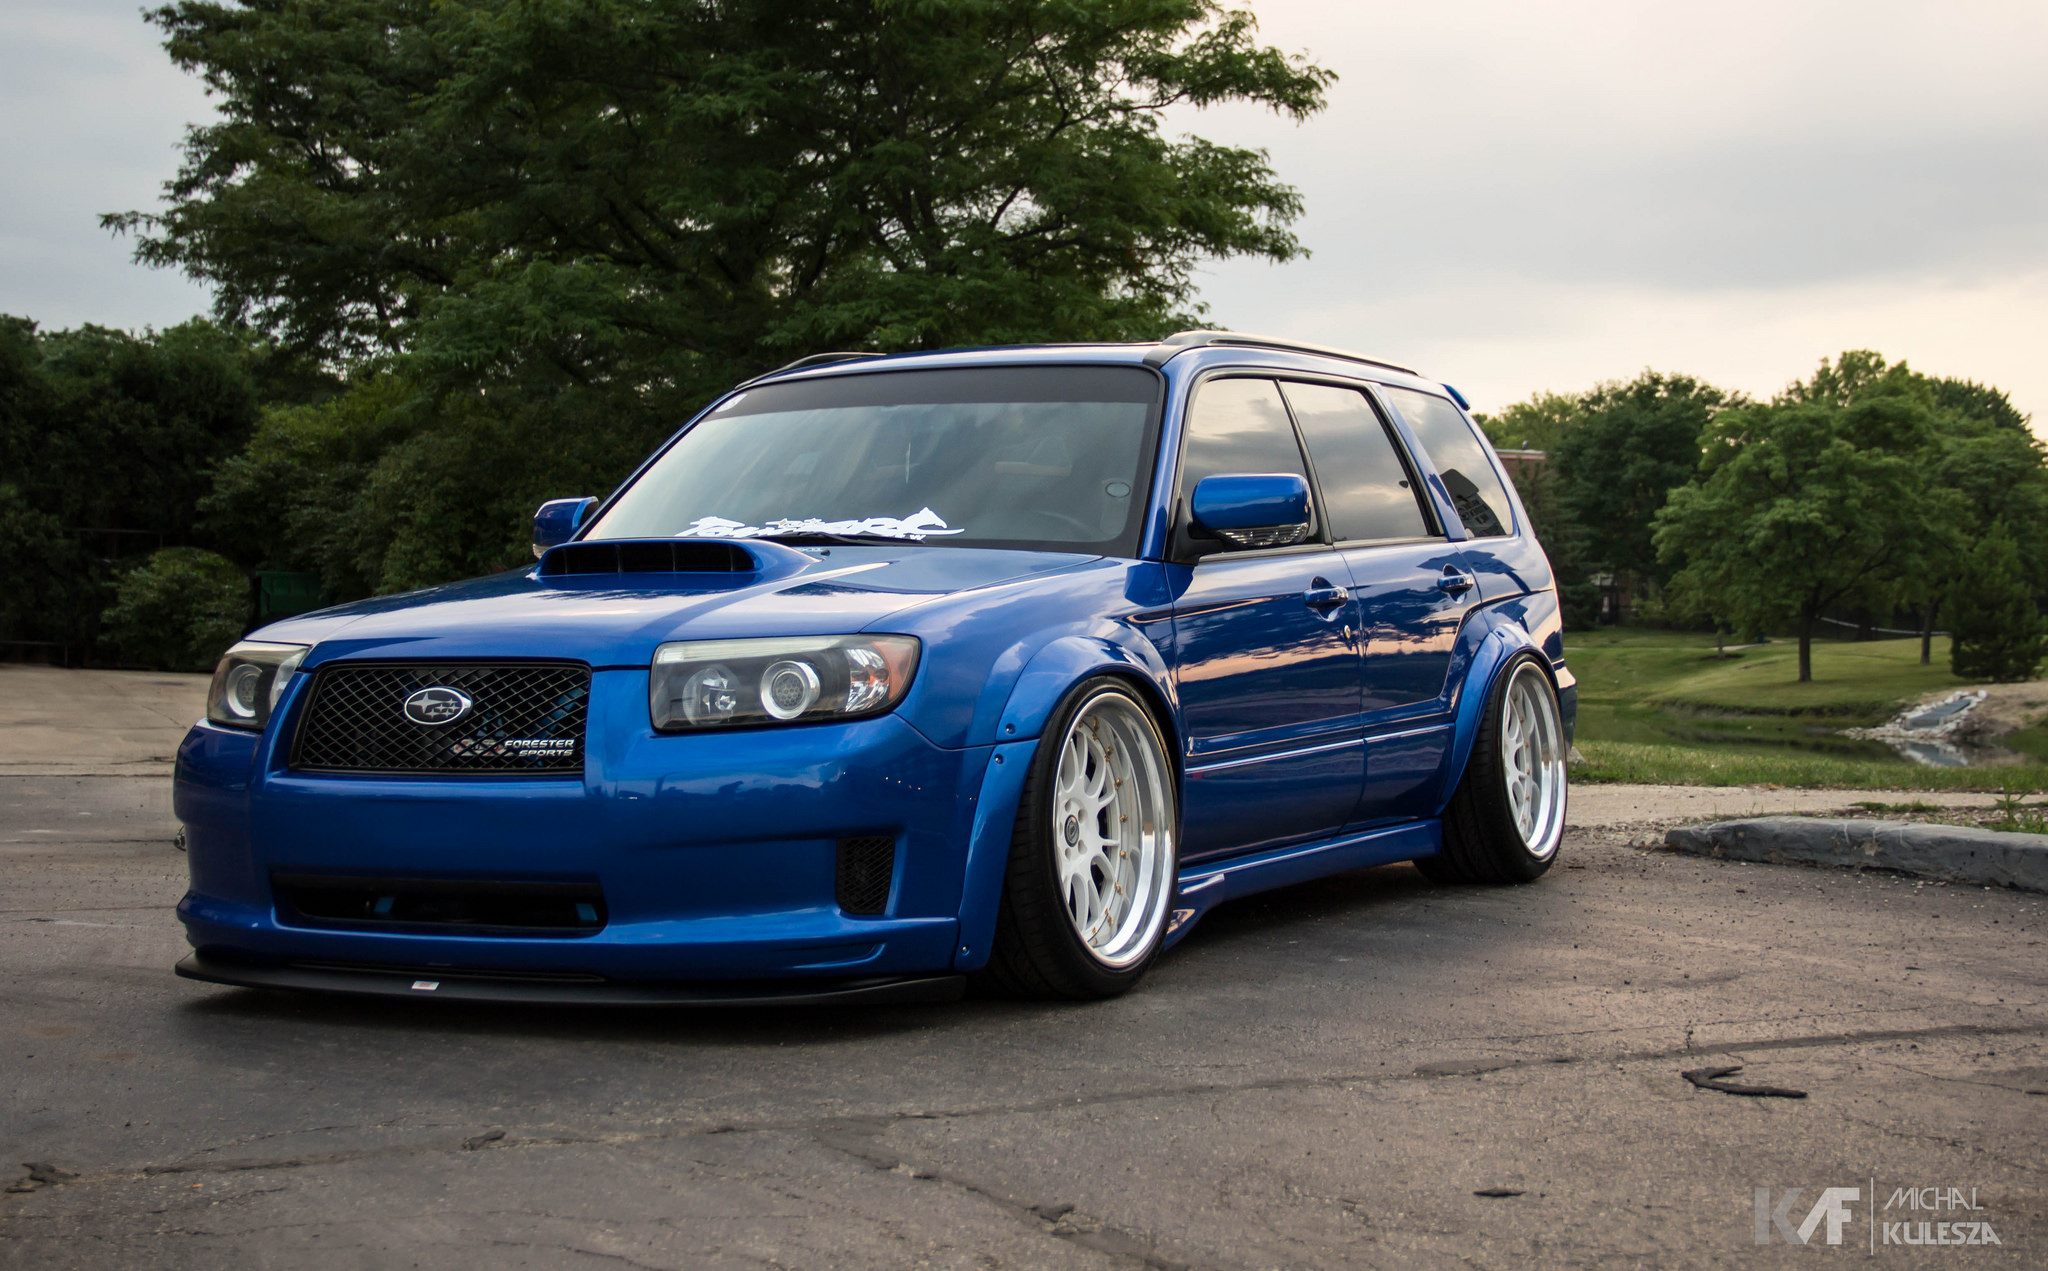 2017 Sti Lowered >> How cool is this Forester? | StanceNation™ // Form > Function